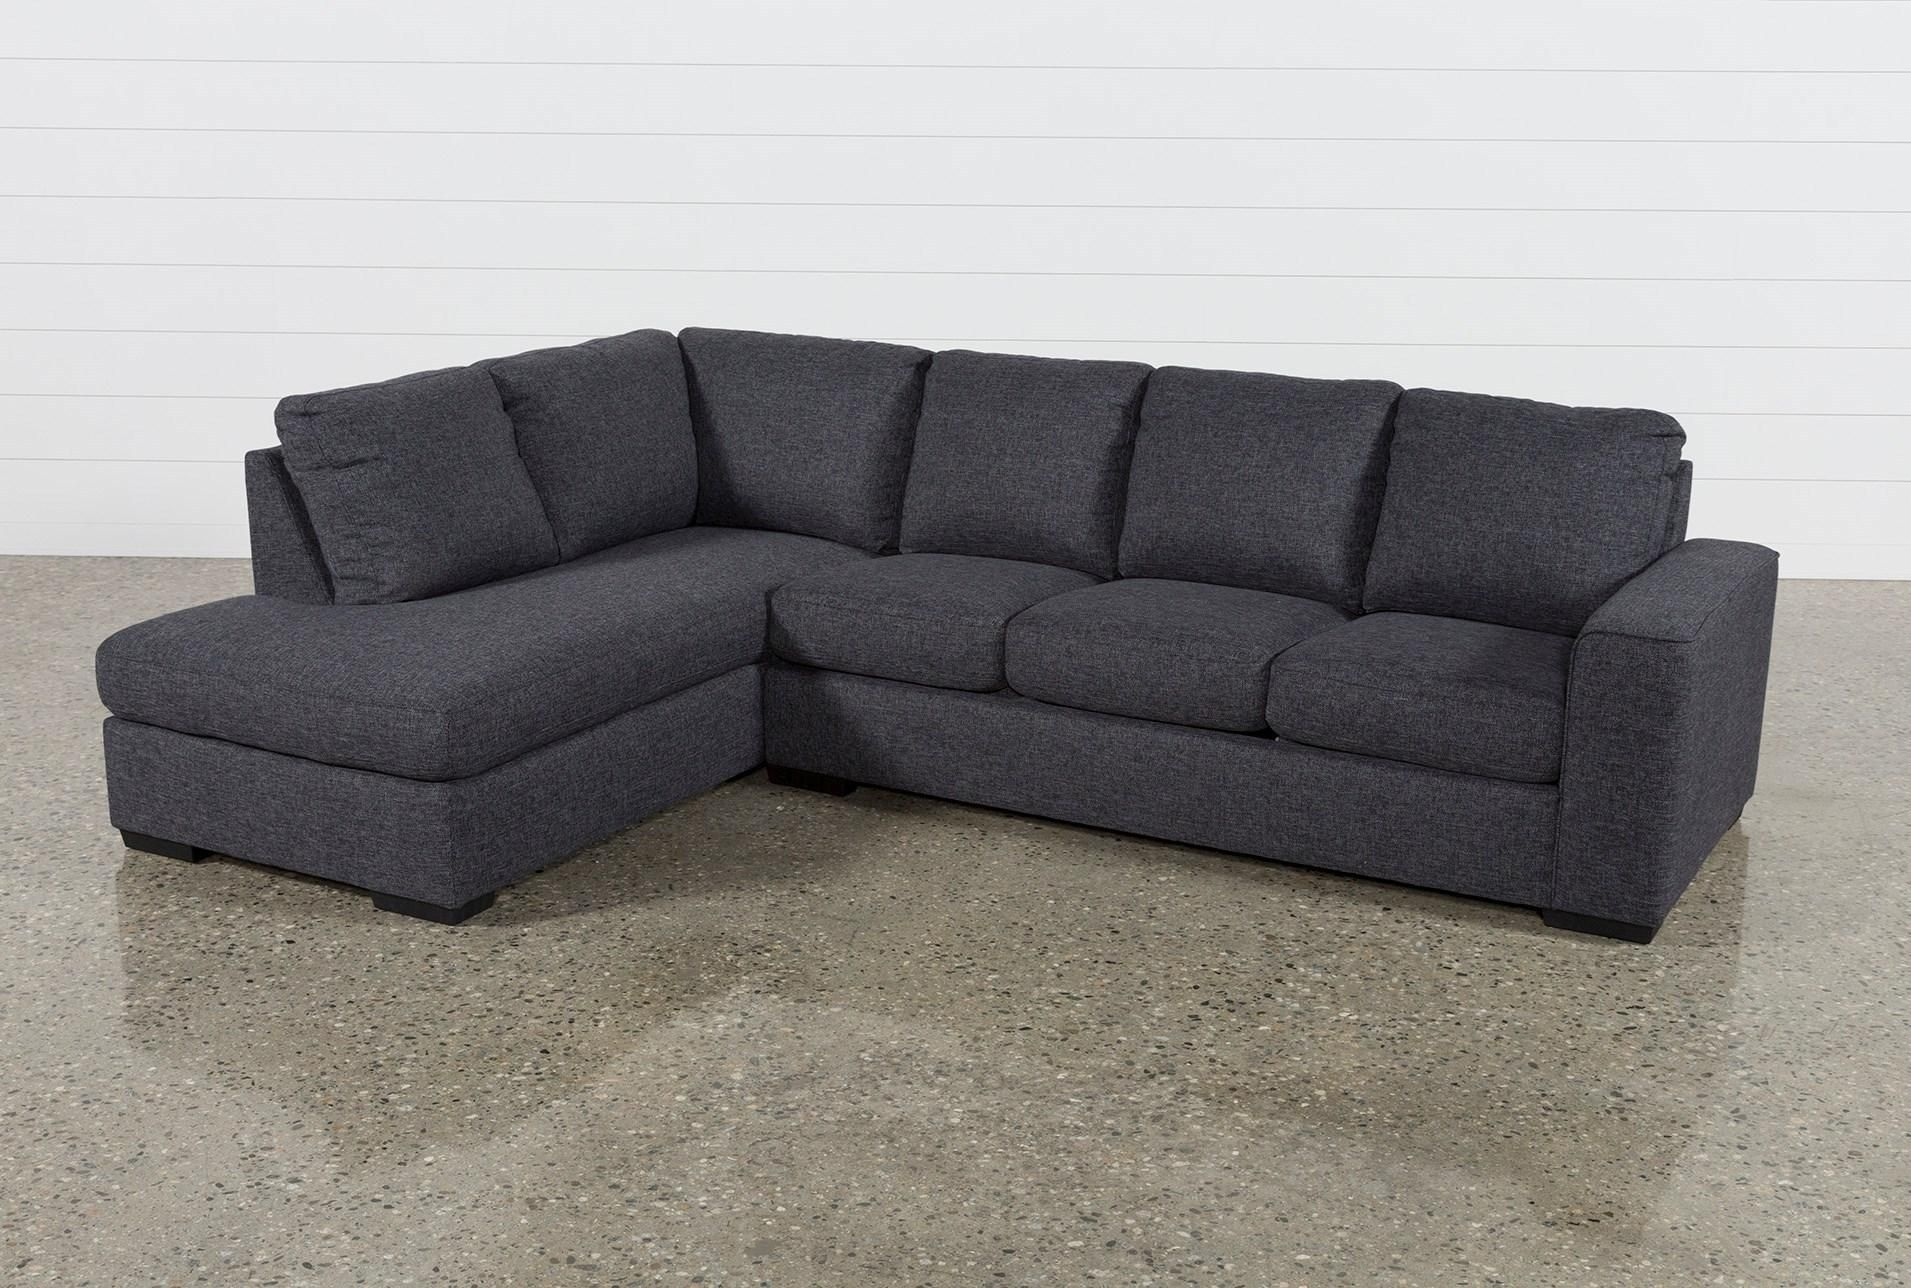 Lucy Dark Grey 2 Piece Sectional W/laf Chaise | Things I Like pertaining to Lucy Dark Grey 2 Piece Sleeper Sectionals With Laf Chaise (Image 13 of 30)